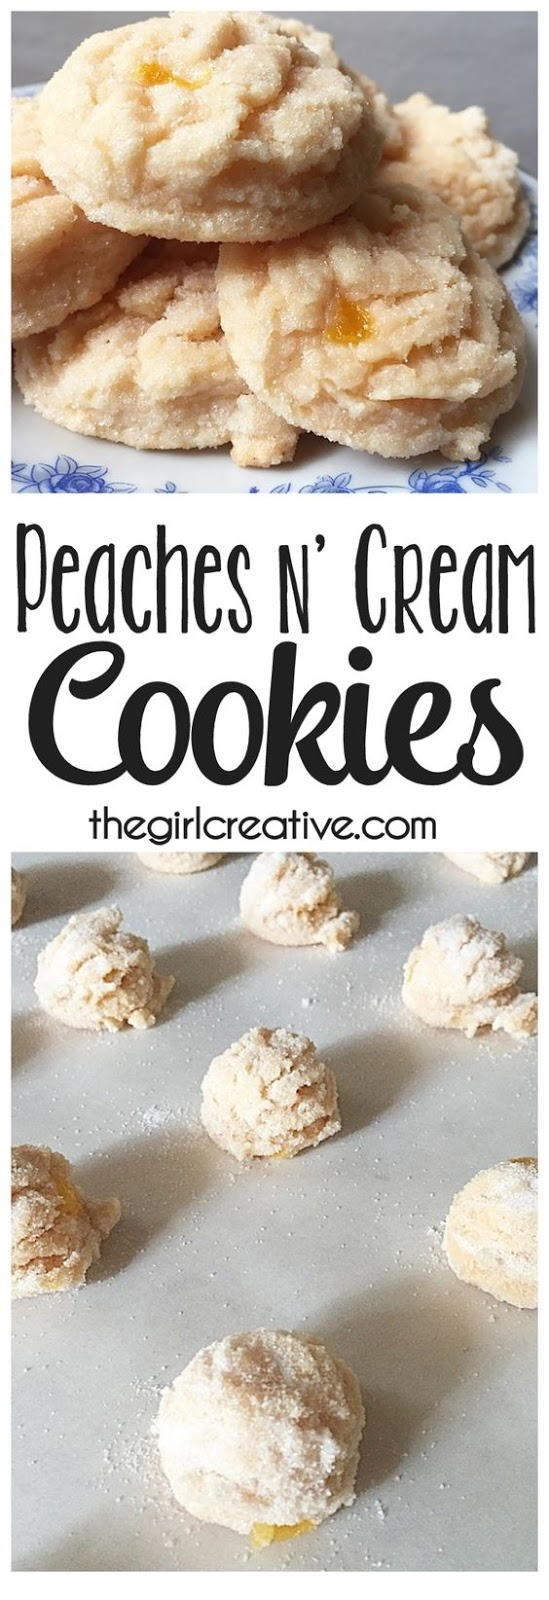 Peaches N' Cream Cookies